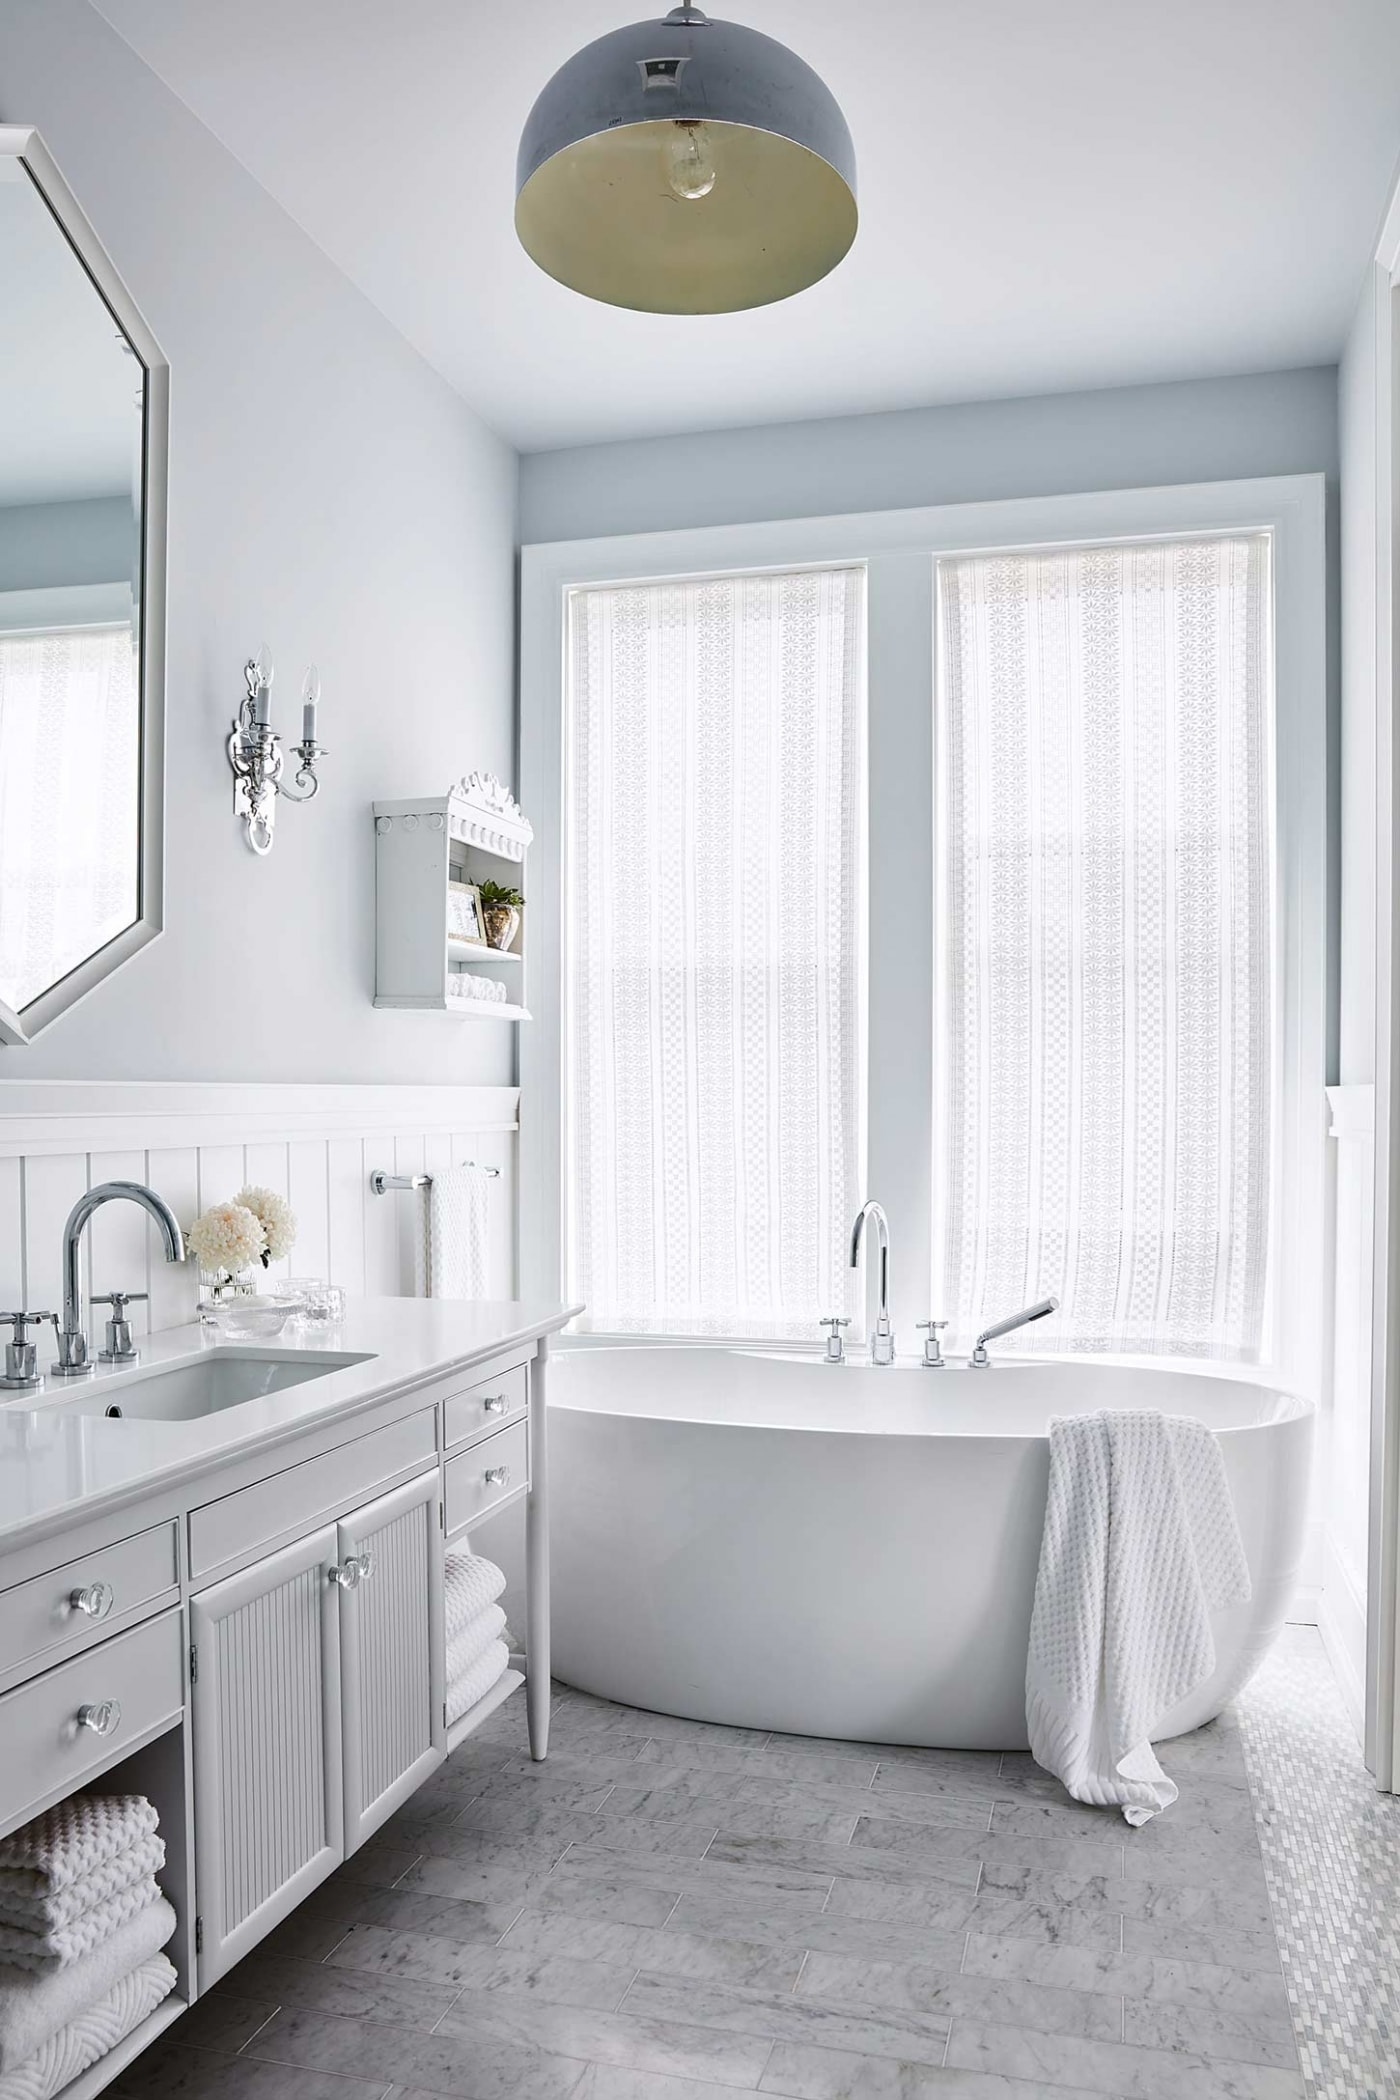 Gorgeous blue and white vintage style bathroom with freestanding tub - Sarah Richardson